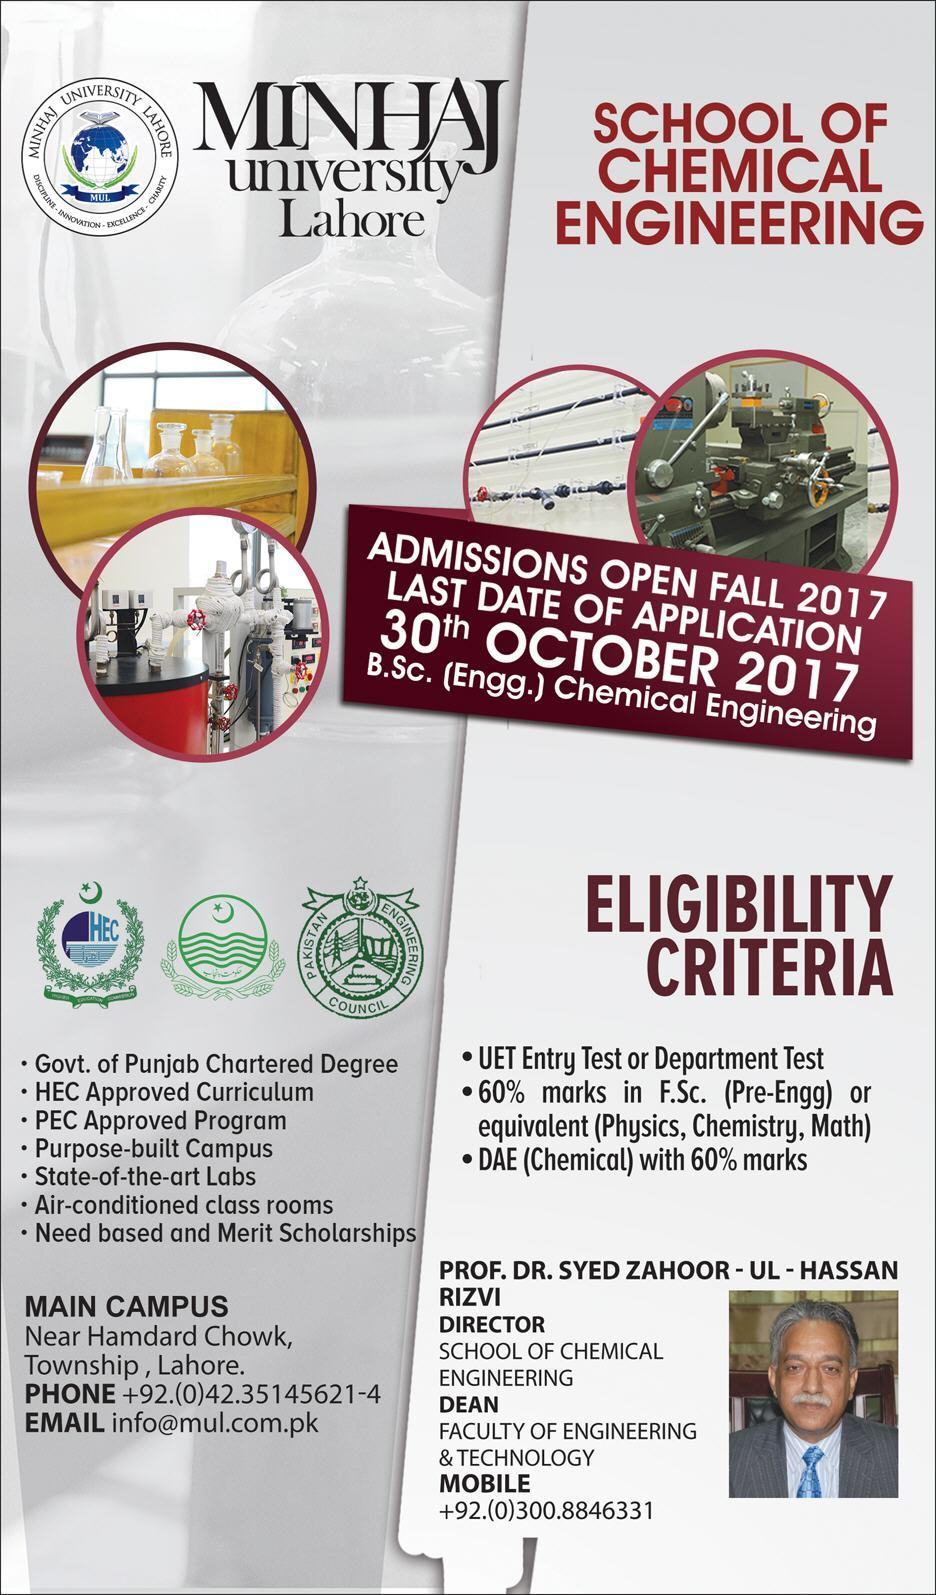 Admissions Open in Minhaj University Lahore - 2017